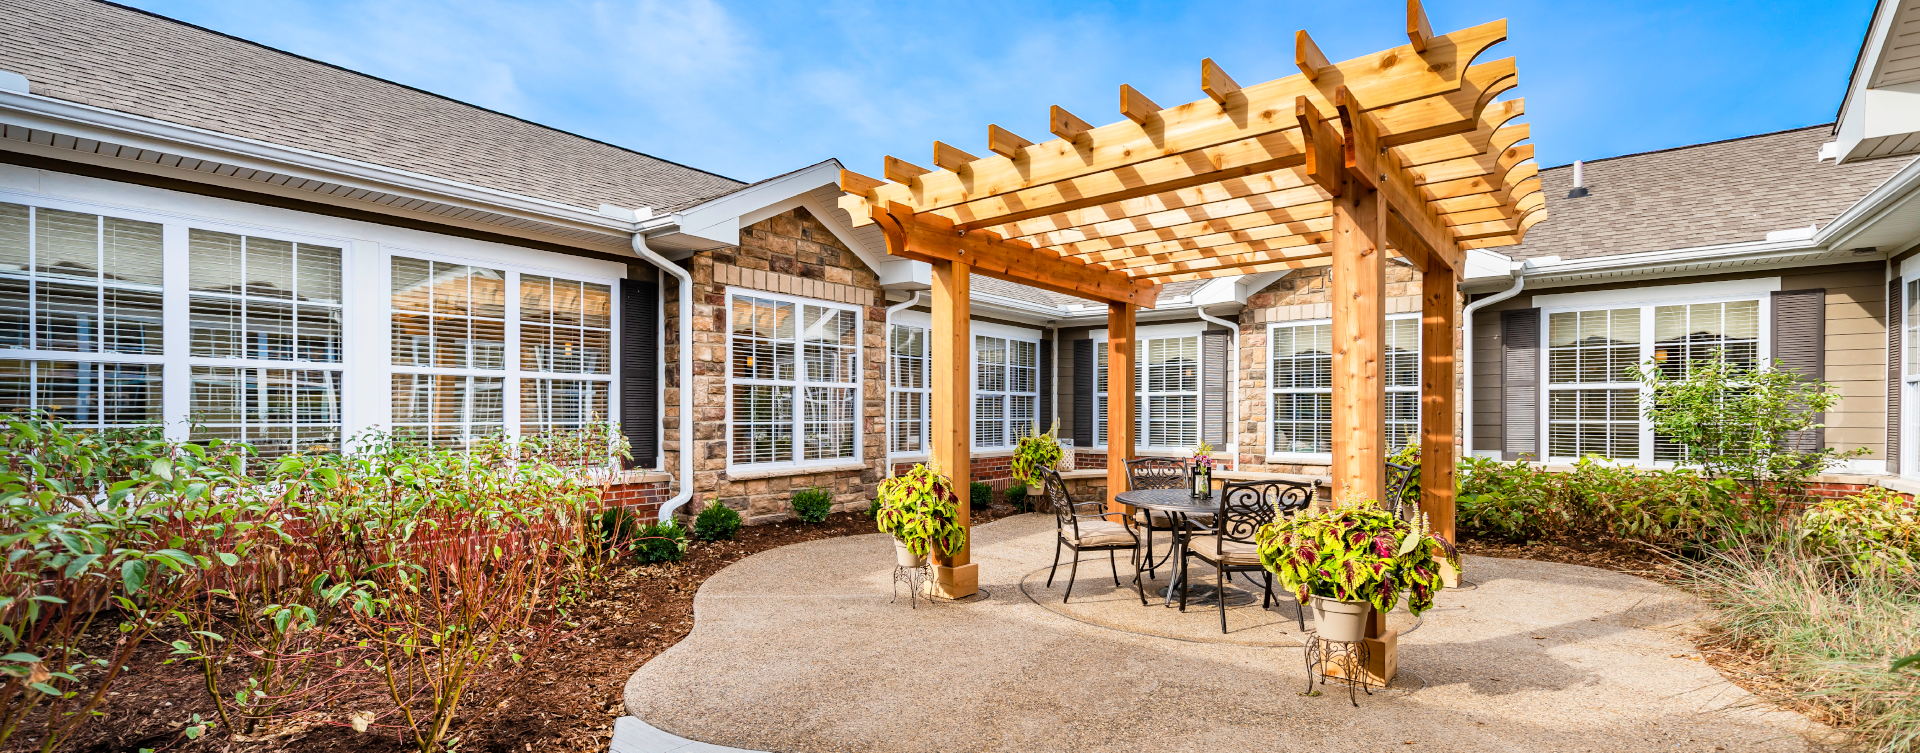 A single entrance courtyard gives residents with dementia the opportunity to be safe outside at Bickford of Shelby Township